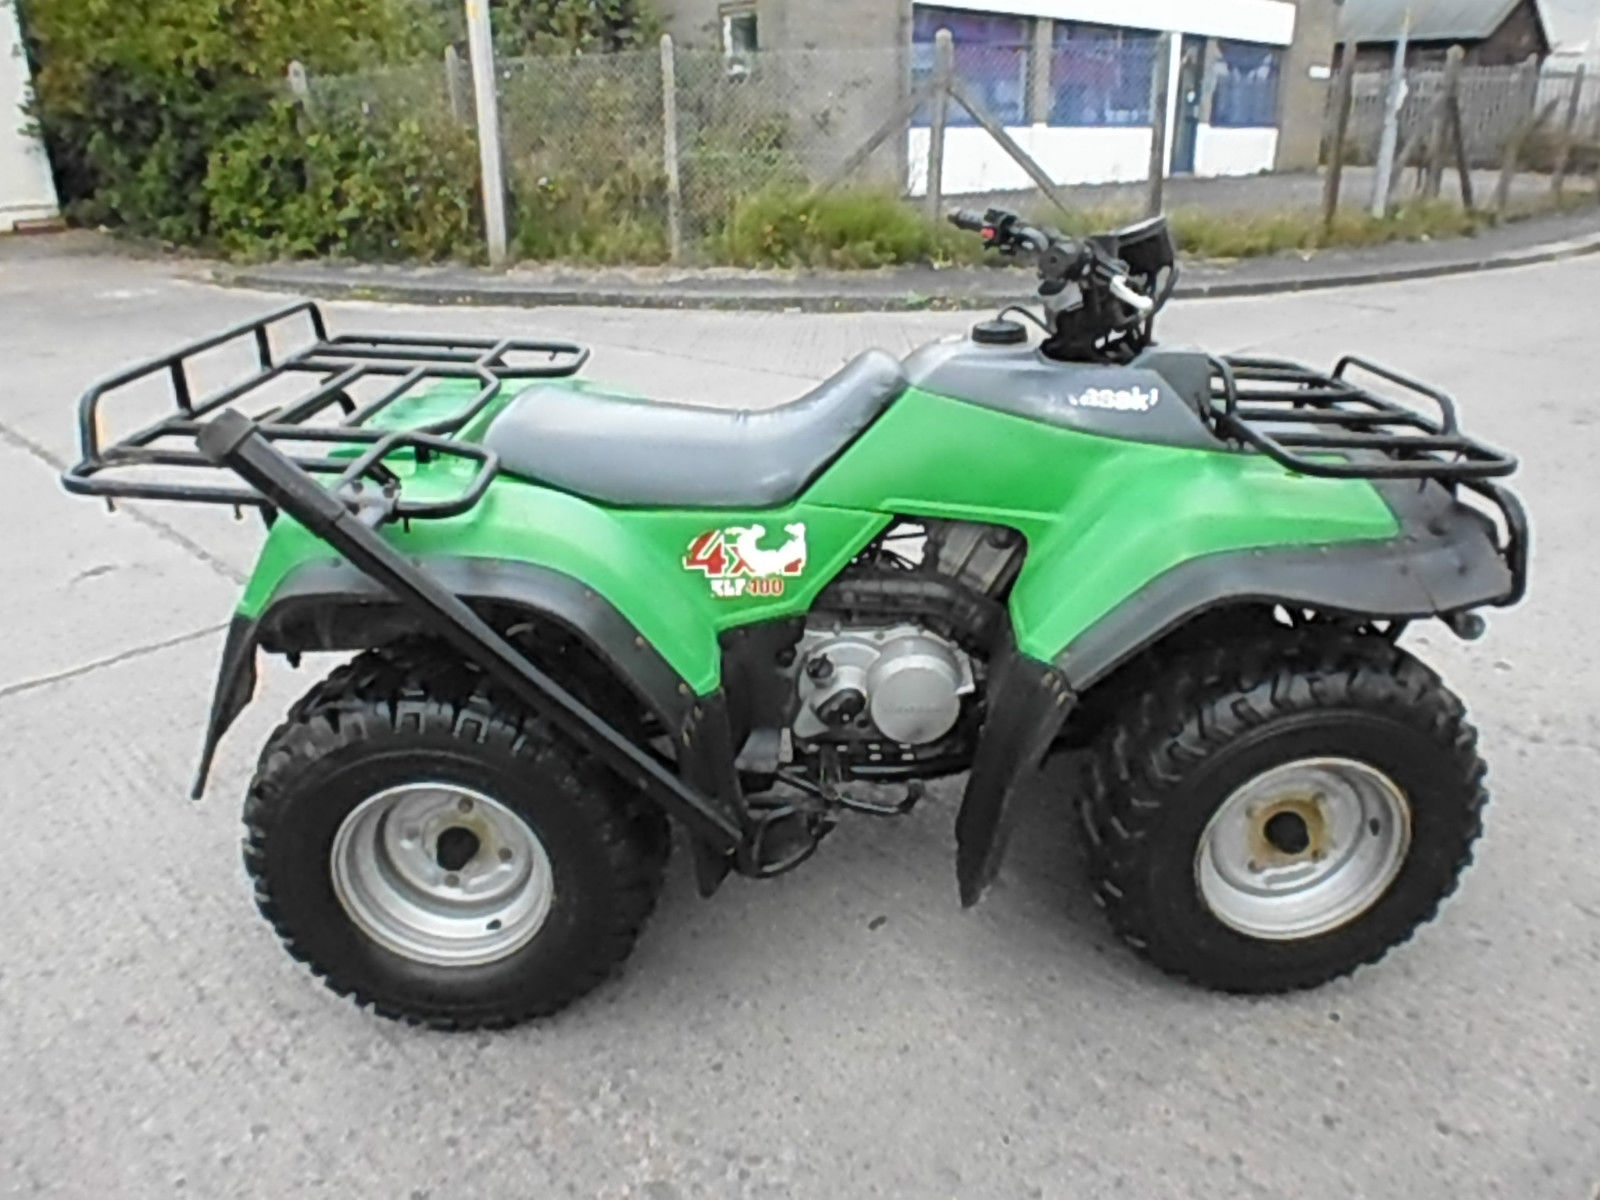 kawasaki klf 400 4x4 farm quad bike atv spares or repair. Black Bedroom Furniture Sets. Home Design Ideas